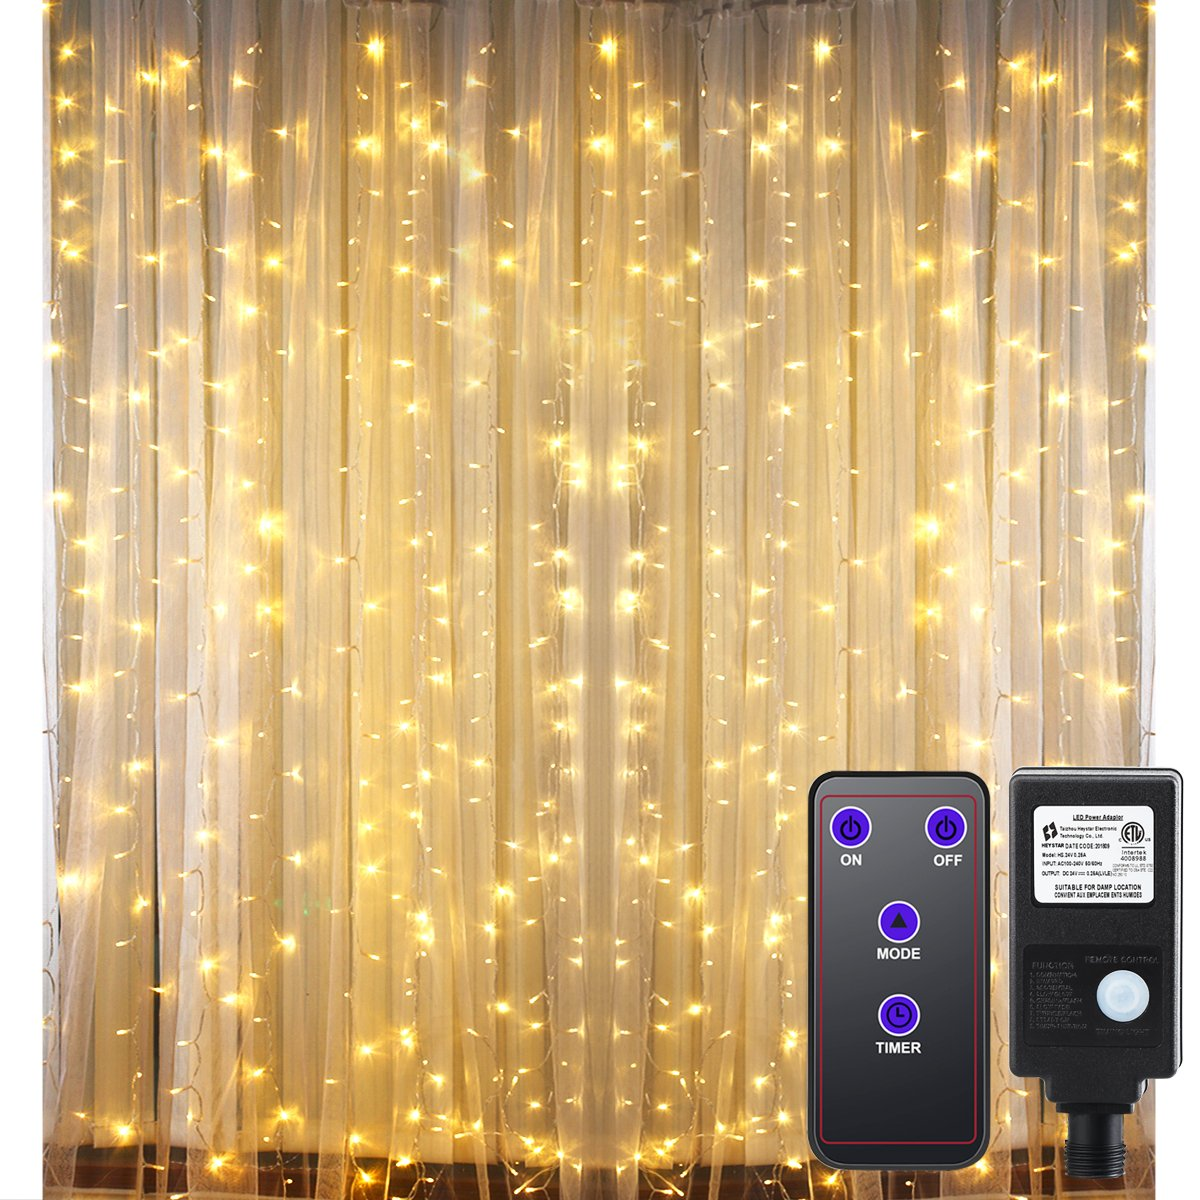 GDEALER 300 Led Window Curtain Lights with Timer,Remote Control String Lights Fairy Lights for Wedding Party Bedroom,6.6x9.8ft Hanging Lights Twinkle Lights Christmas Lights Wall Decor Warm White